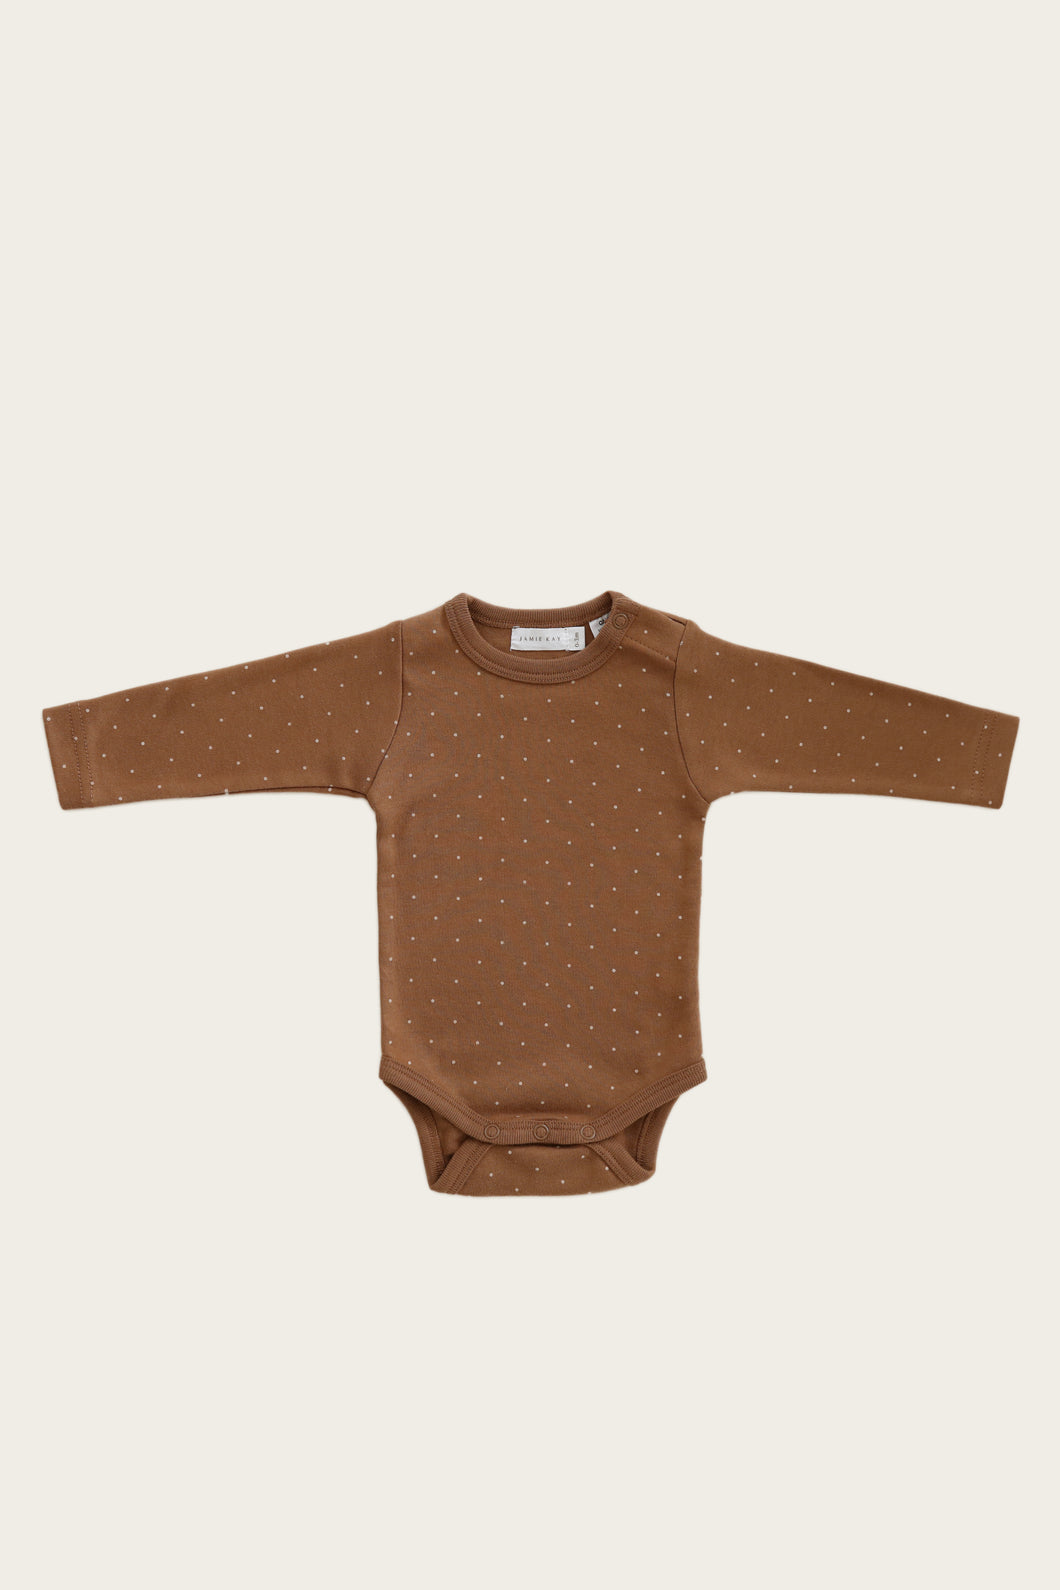 L/S Bodysuit - Tiny Dots